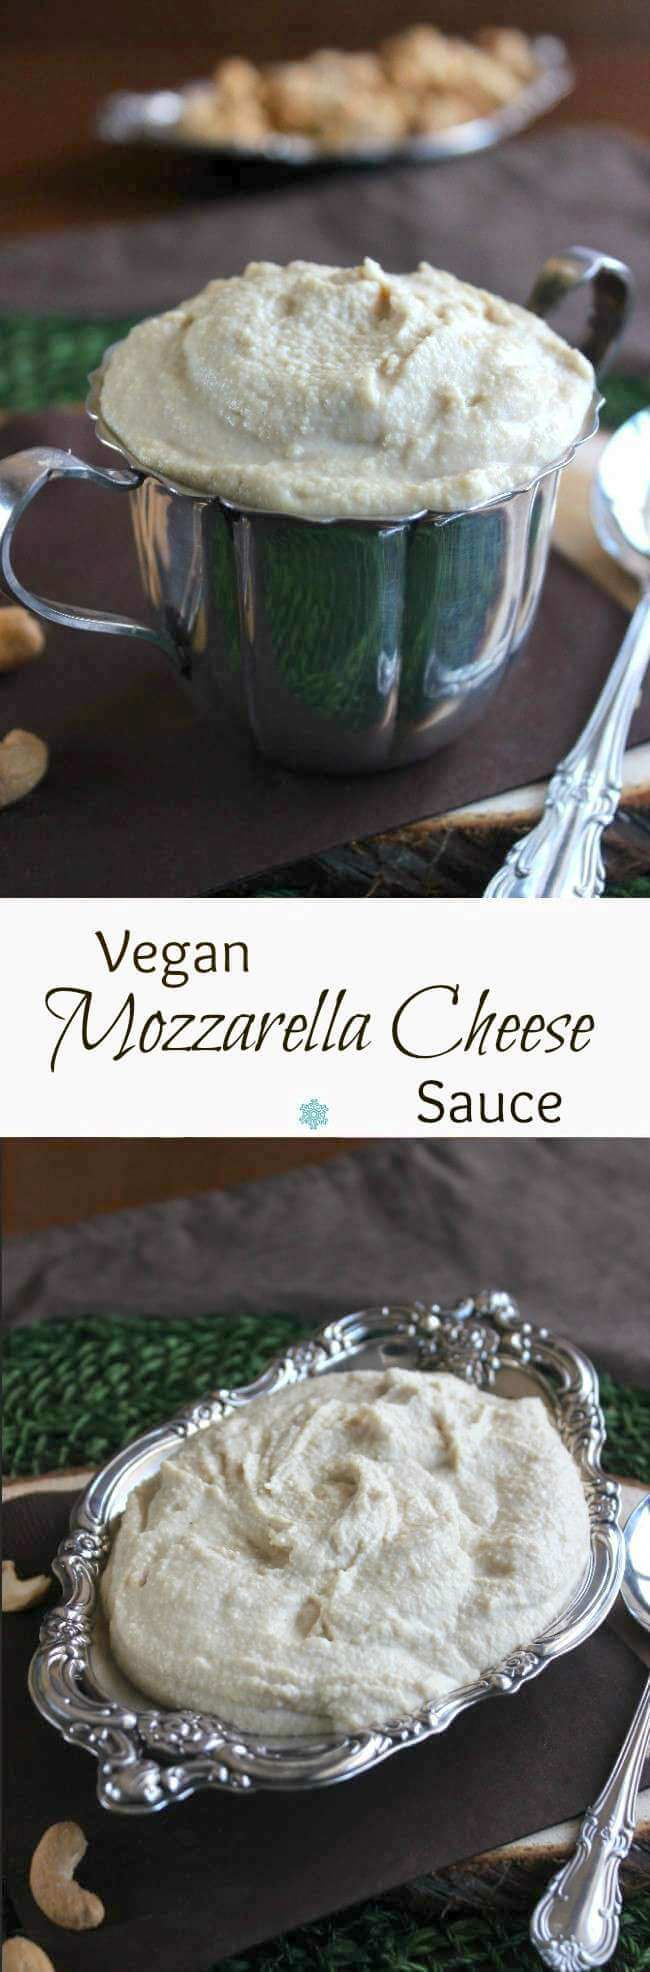 Vegan Mozzarella Cheese is easy to make and is the perfect texture. A little gooey for dips and spreads and creamy enough to spread for layers in casseroles.